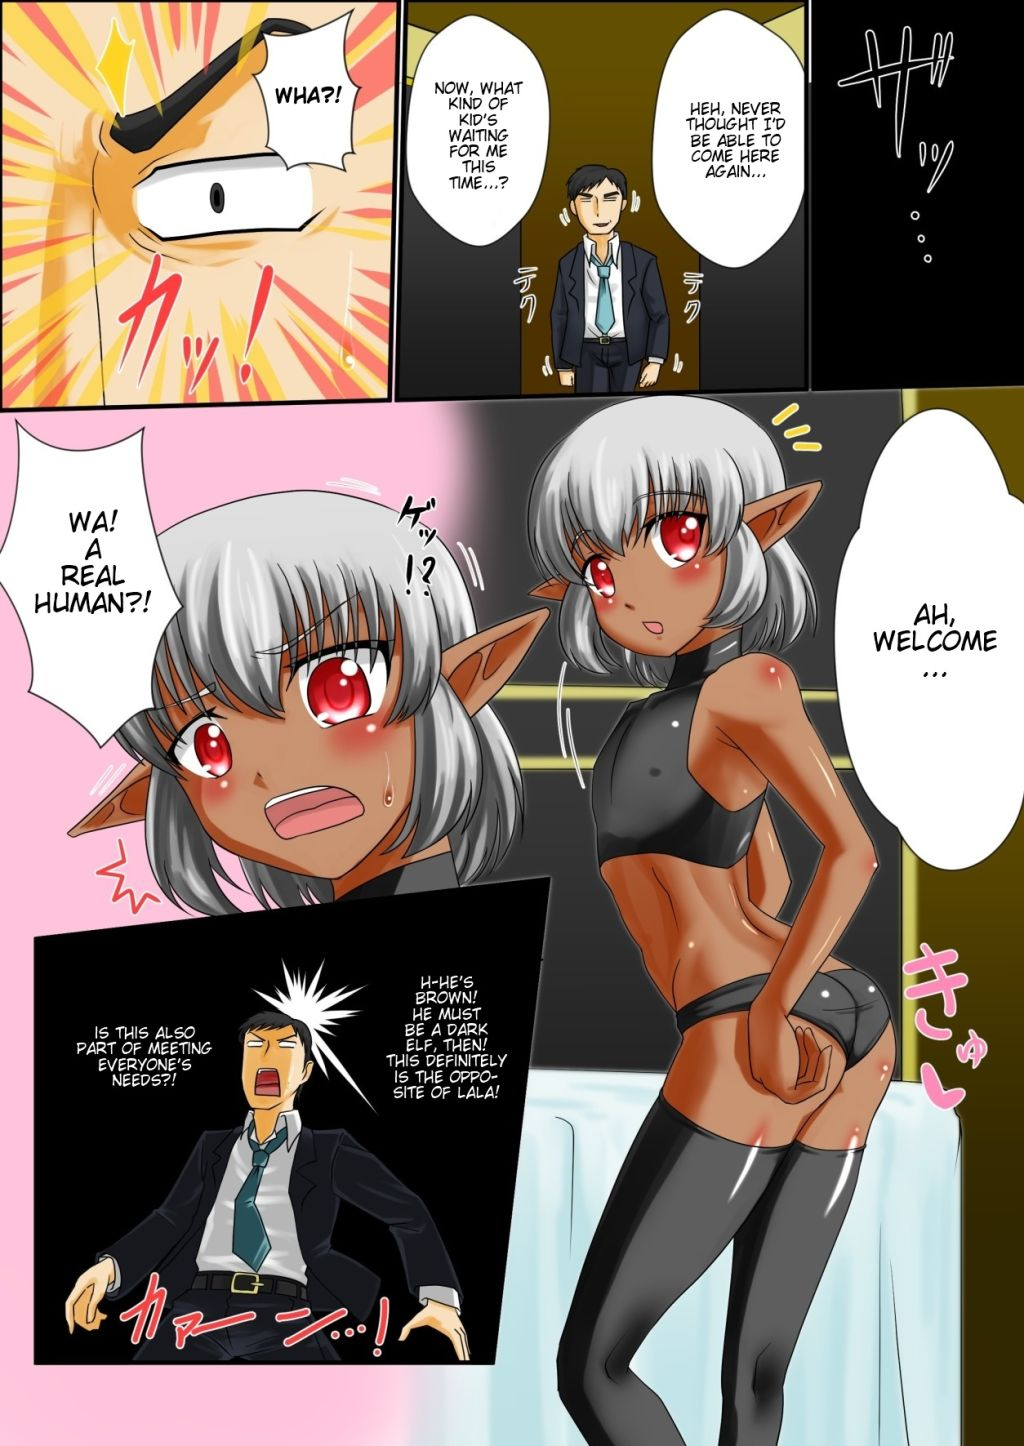 Gay-interracial-Yaoi-Trap-black-male-Trans-fucked-by-big-white-cock-dickgirl-elf-Porn-Comic-ears-hentai-Manga-humor-full-color-latex-yoga-pants-cross-dressing-sex-worker-prostitute-small-breasts-Trap-Elves